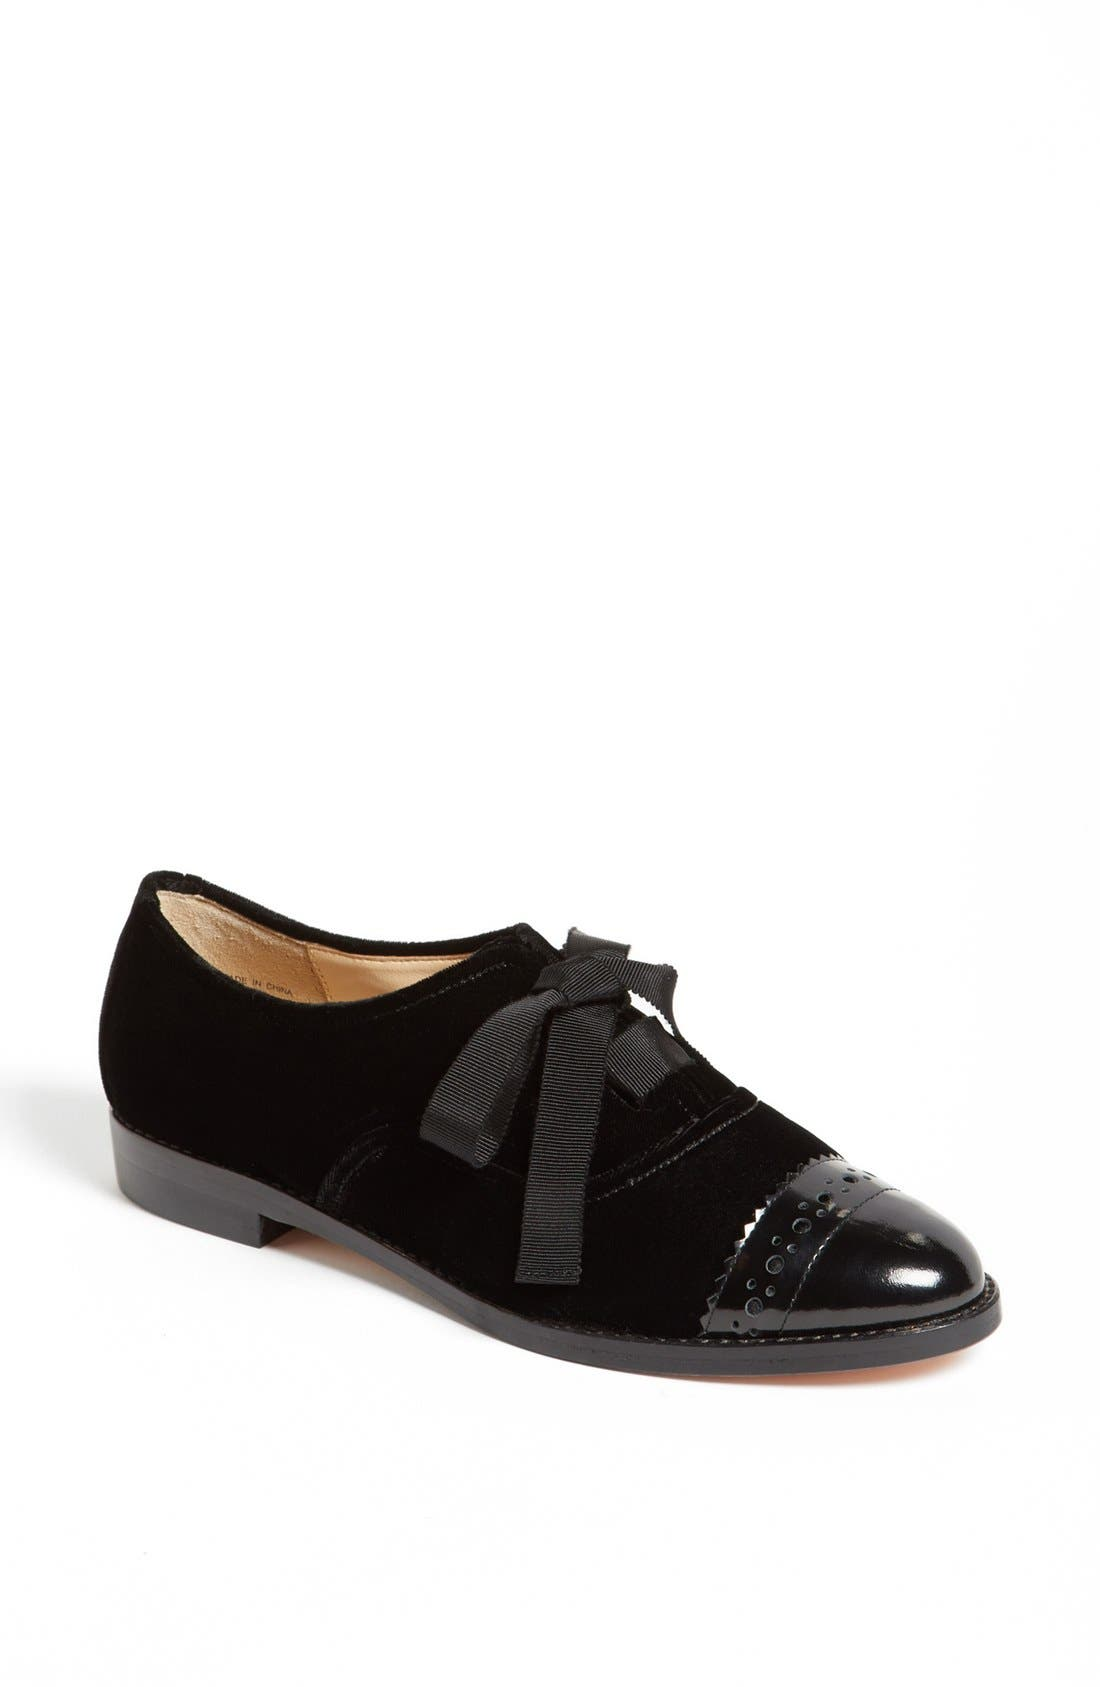 Main Image - kate spade new york 'poppin' oxford